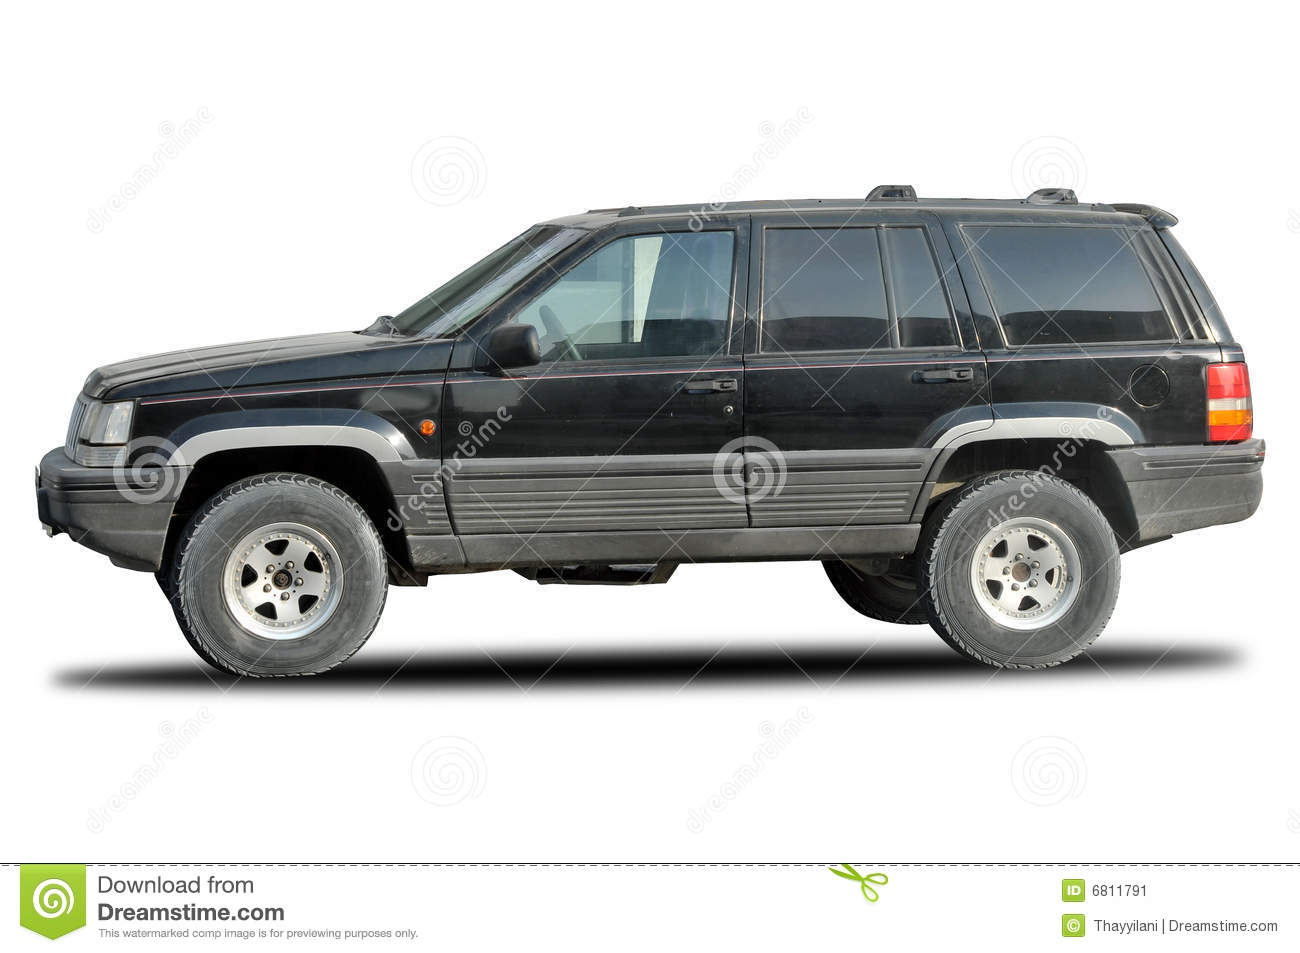 2001 Jeep Grand Cherokee Motor Old Jeep Cherokee 4x4 stock image. Image of fast, isolated ...